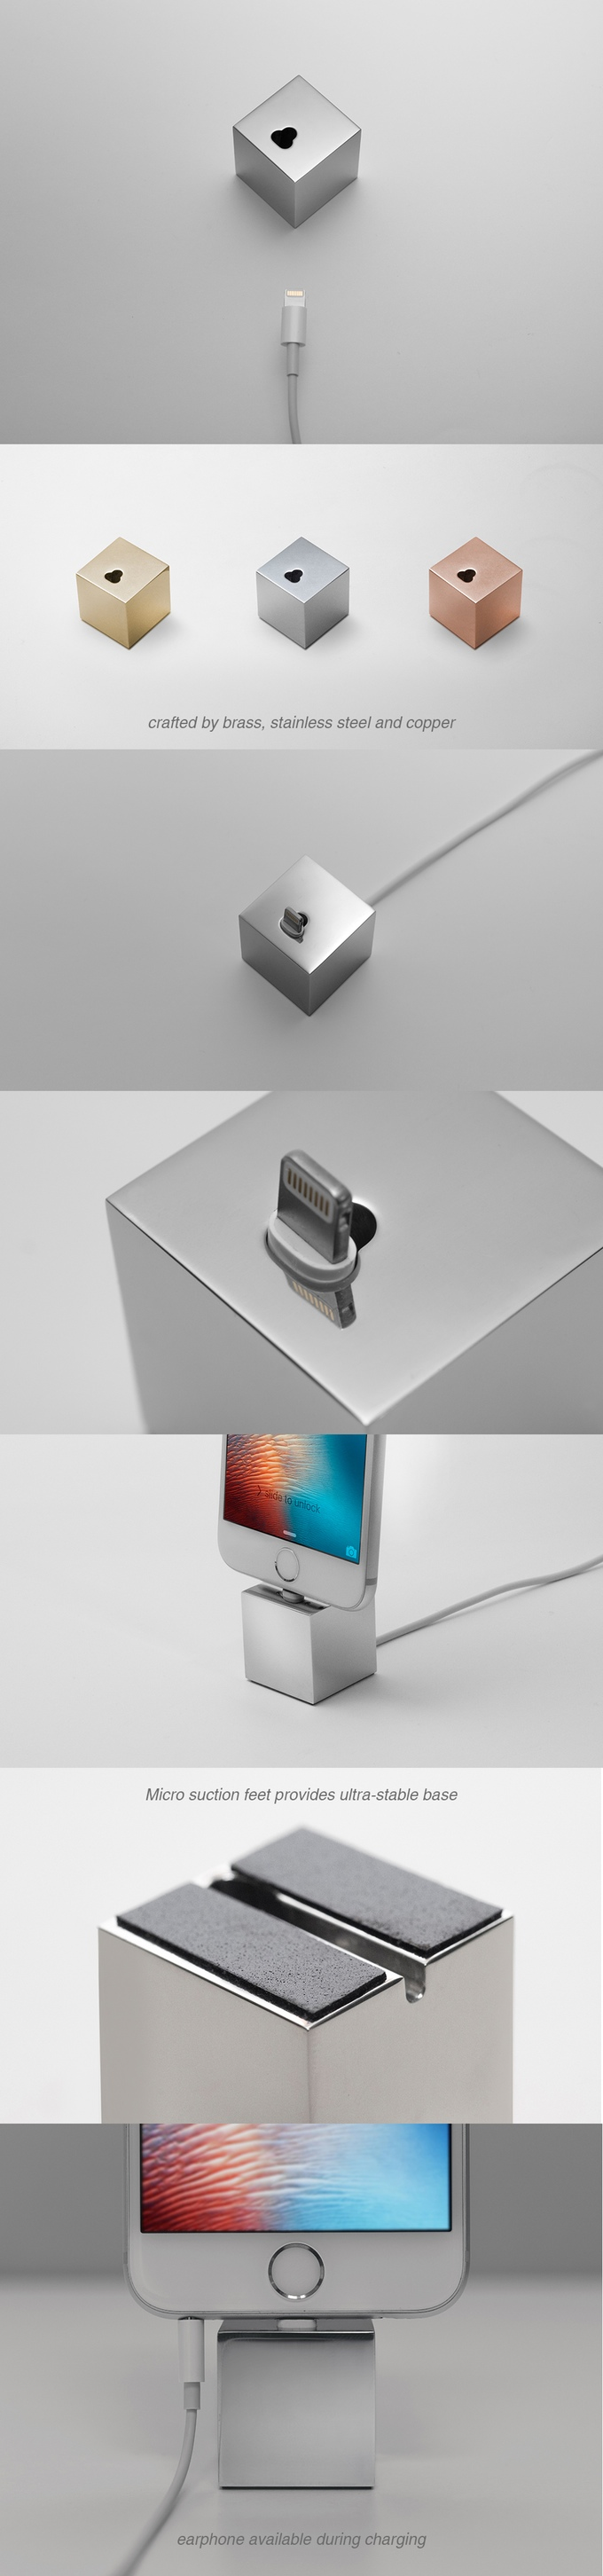 Q-Dock Charger